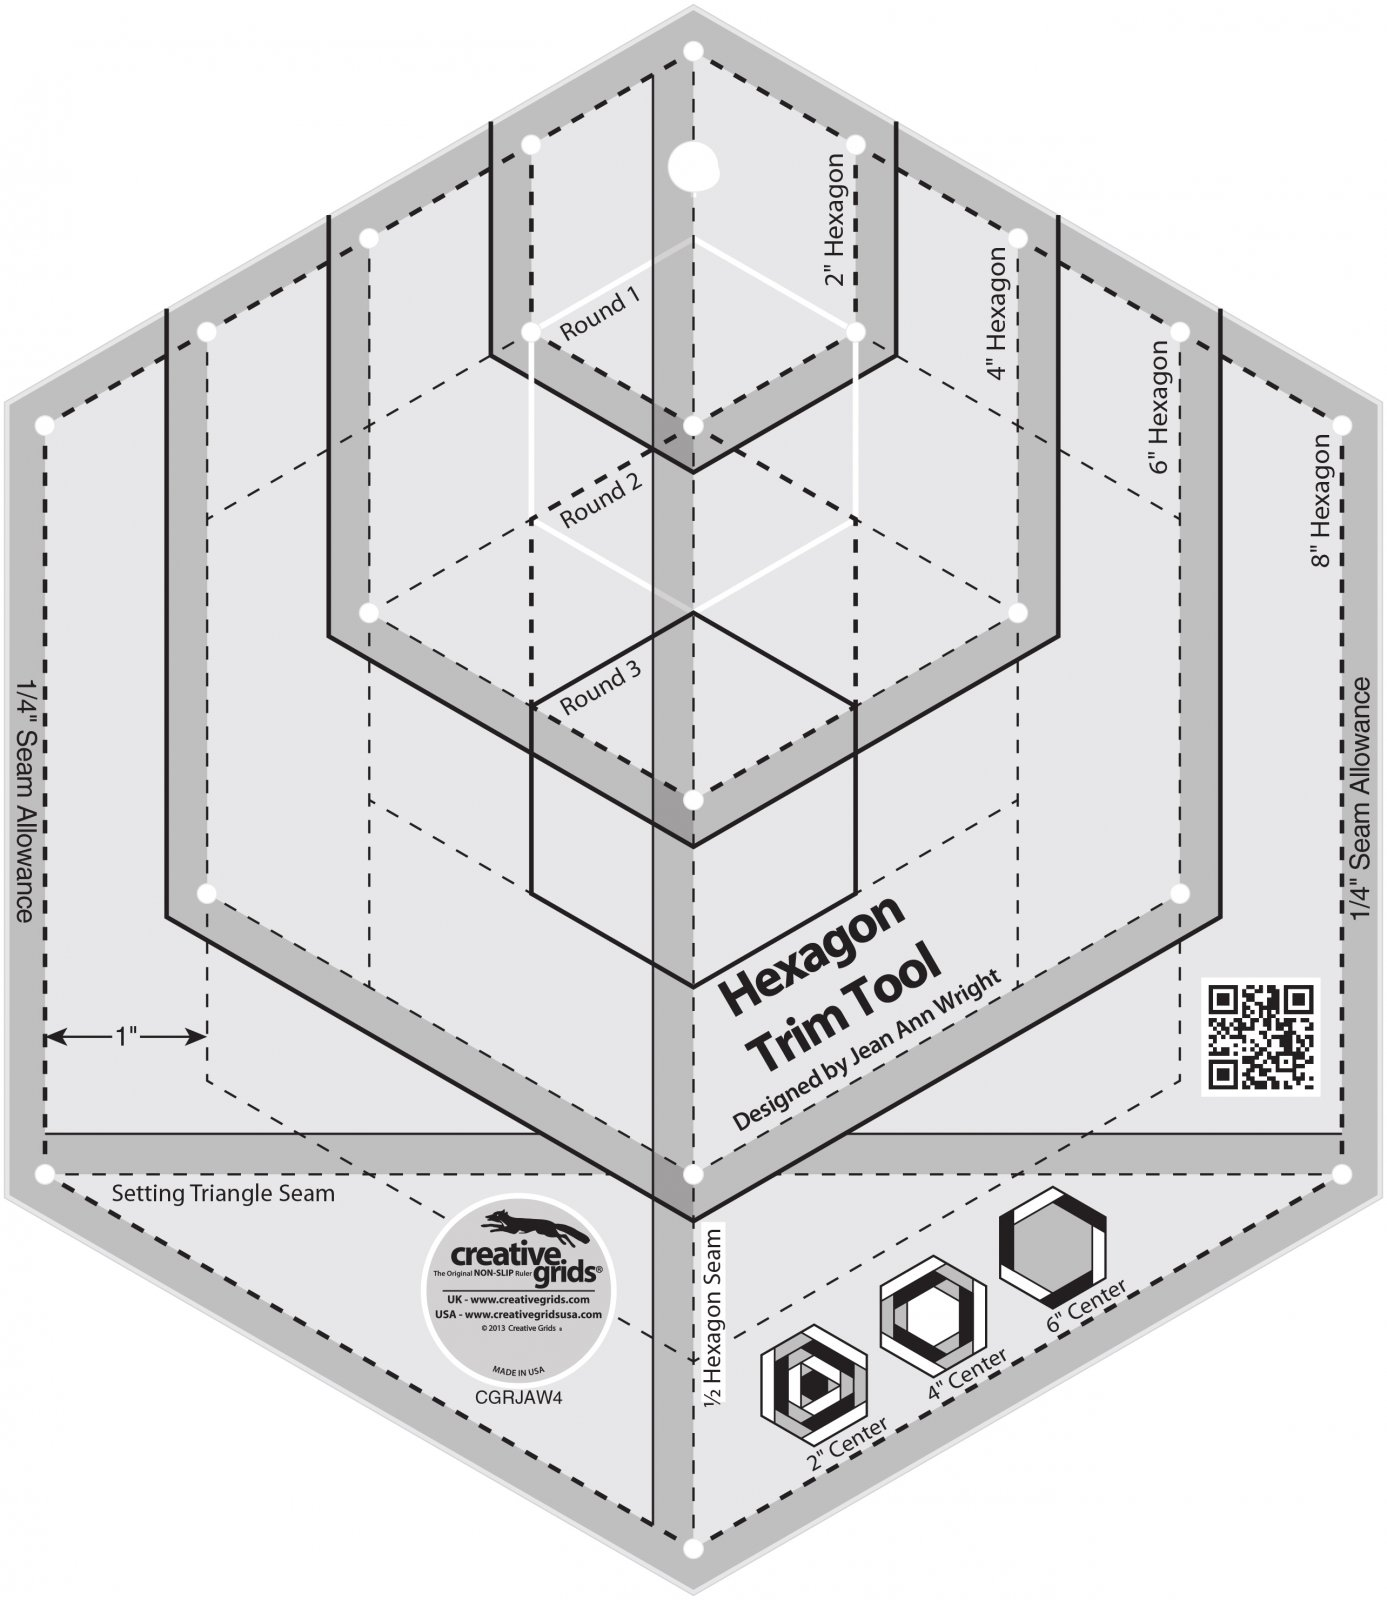 Cool 15 Year Old Resume Template Tall 16 Oz Tumbler Template Flat 1st Job Resume Examples 2 Inch Hexagon Template Young 2 Page Resume Format Doc White2 Page Resume Sample Format Grids Hexagon Trim Tool